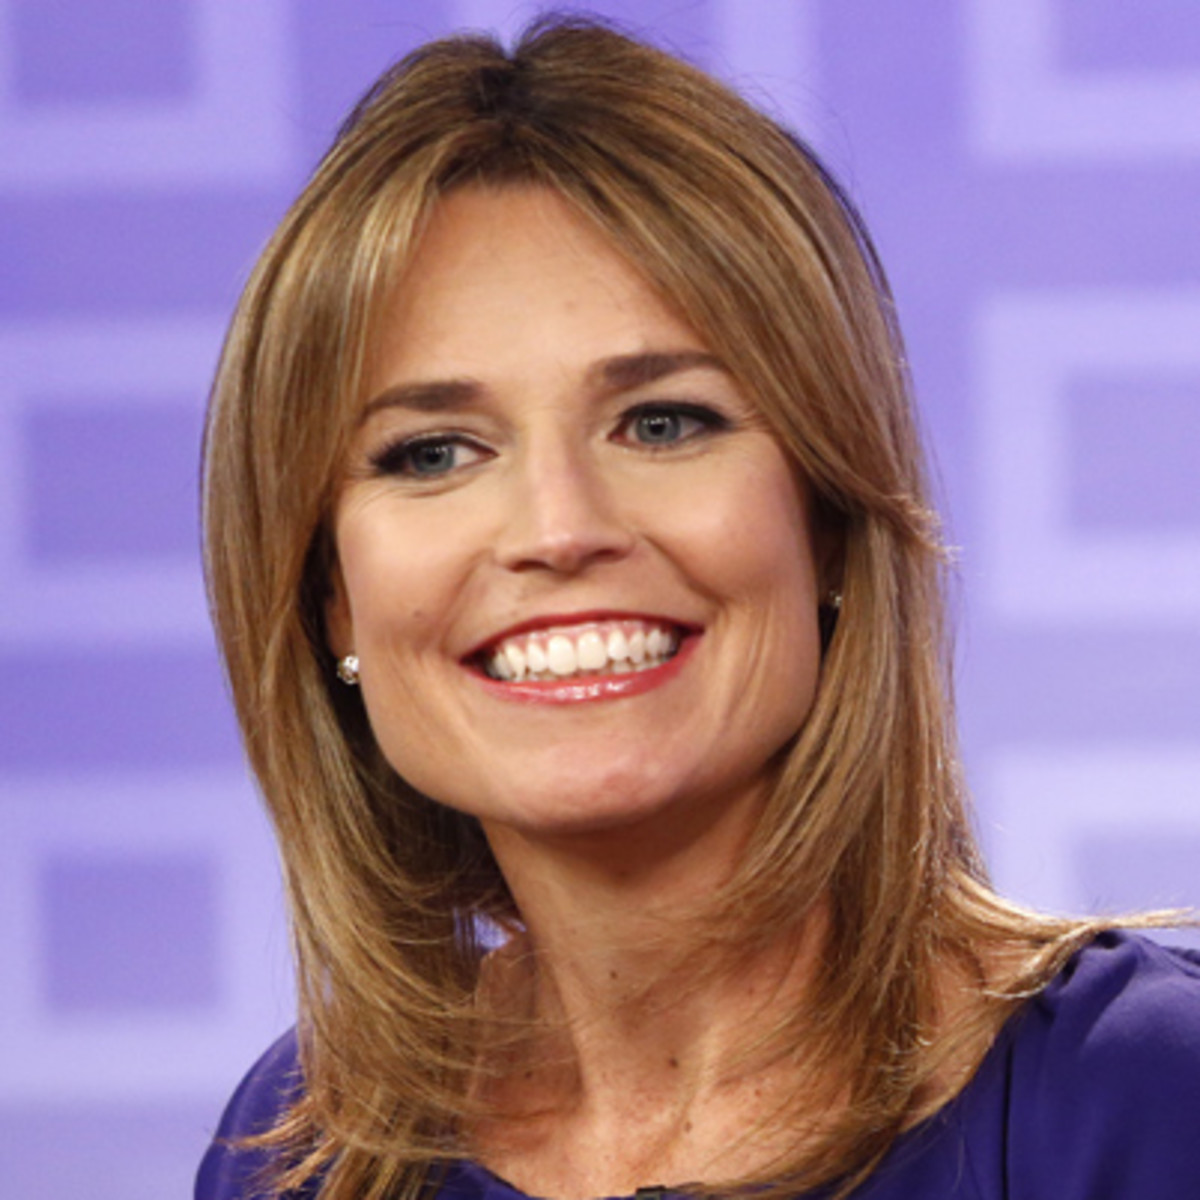 Savannah Guthrie Talk Show Host News Anchor Biography